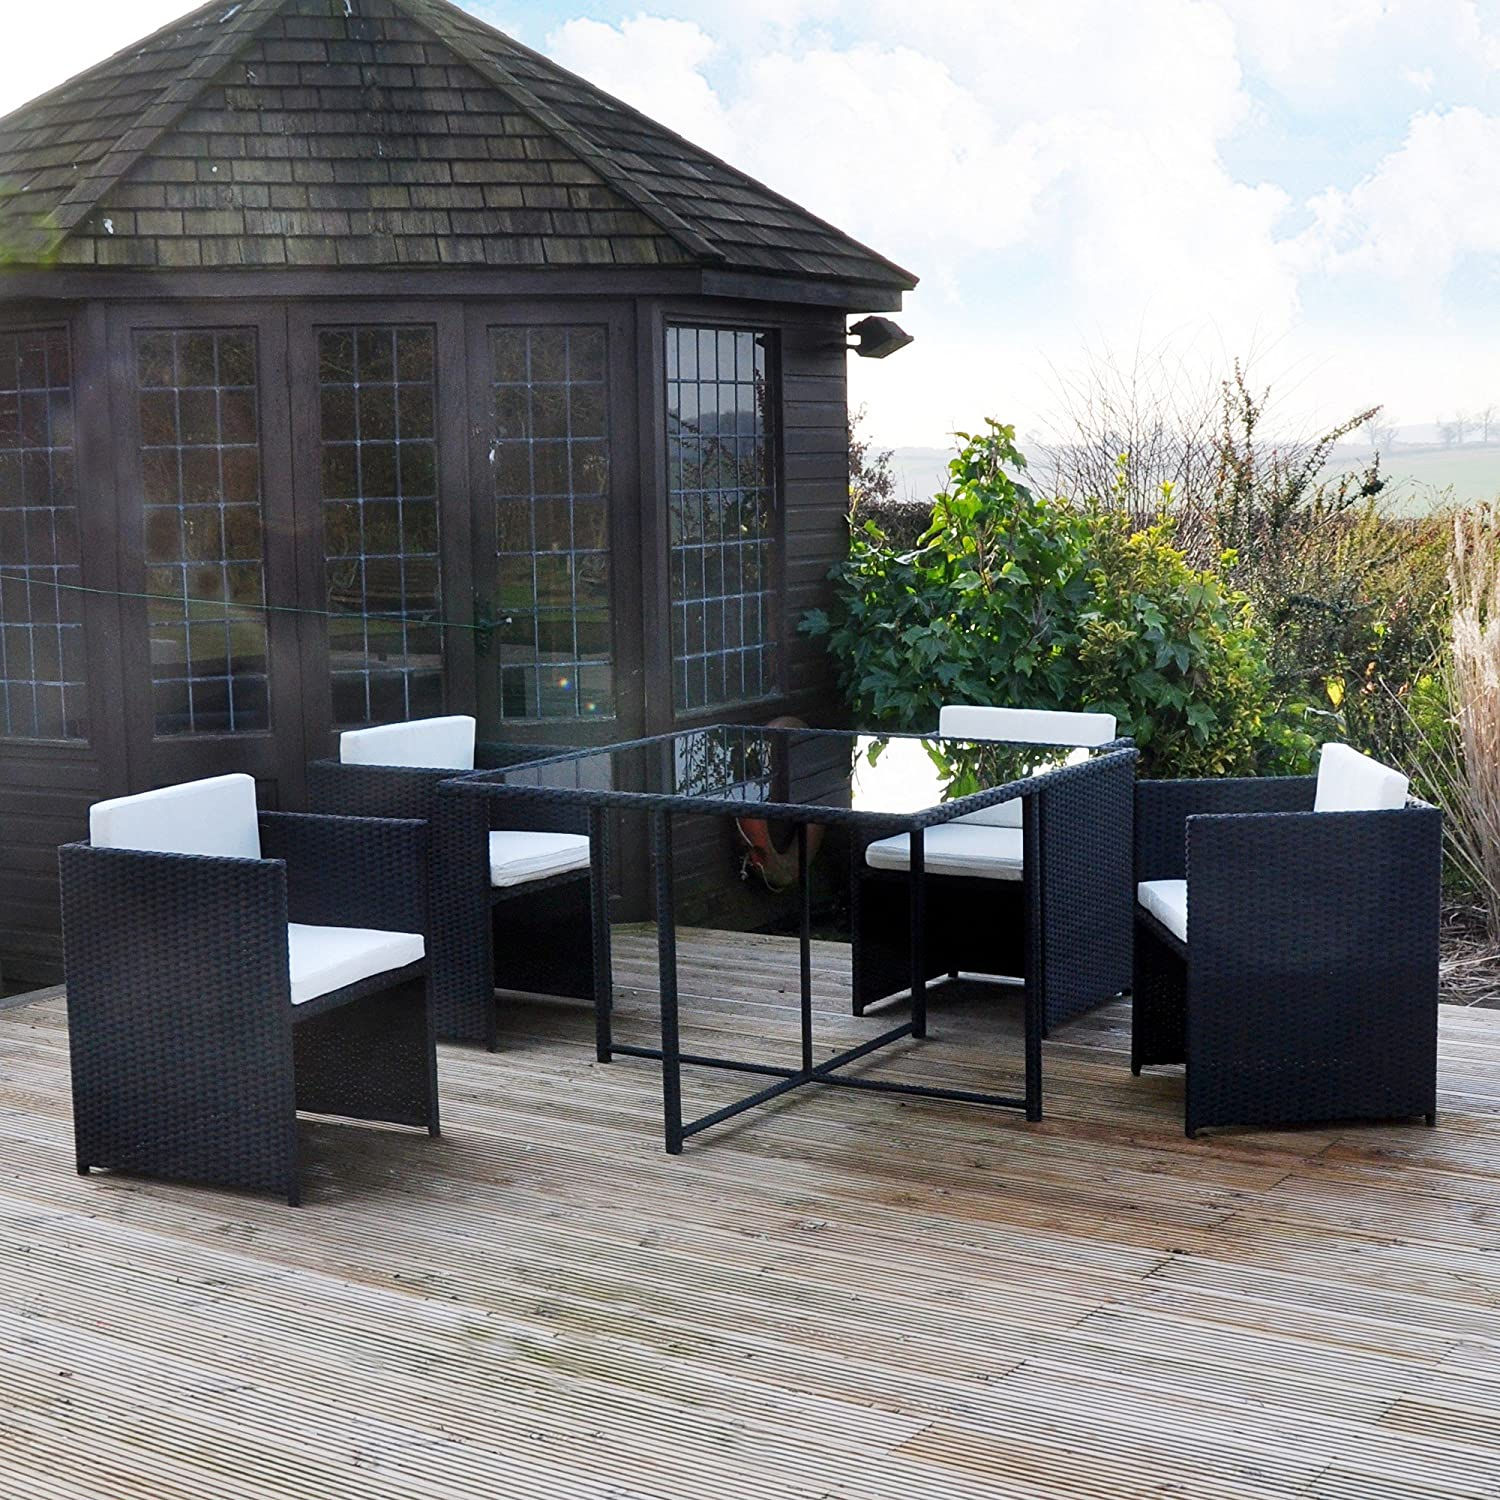 Kingfisher RCUBE Rattan Effect Cube Table and 4 Chairs Garden Set Black